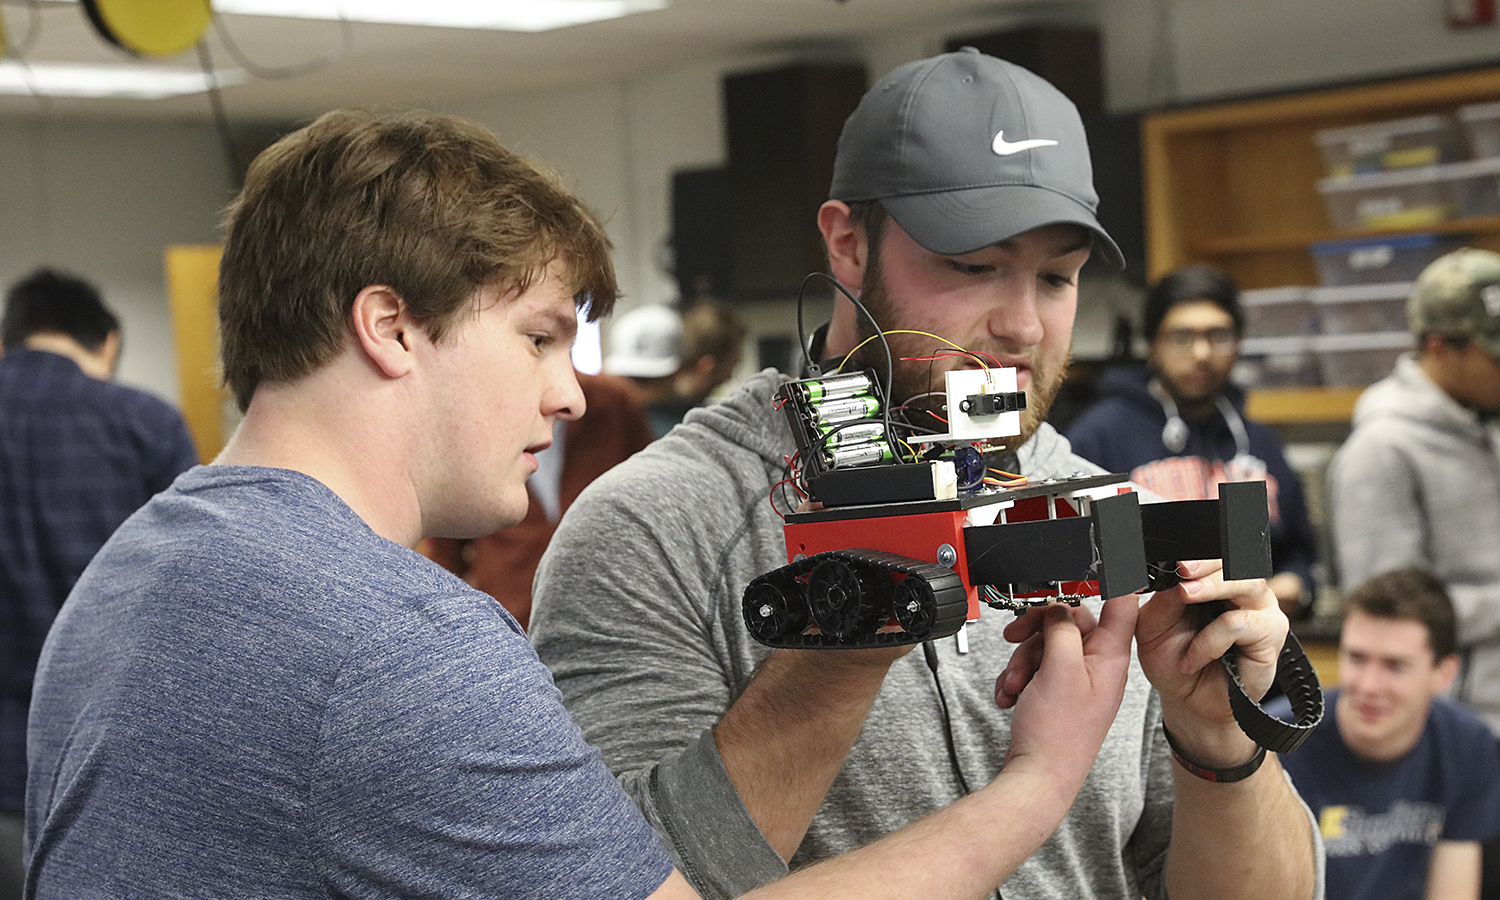 """Second photo shows Chase Brown on the left, and Jonathon Koch work on repairing an unexpected mechanical problem with their tractor tread robot named """"Wall-E""""."""